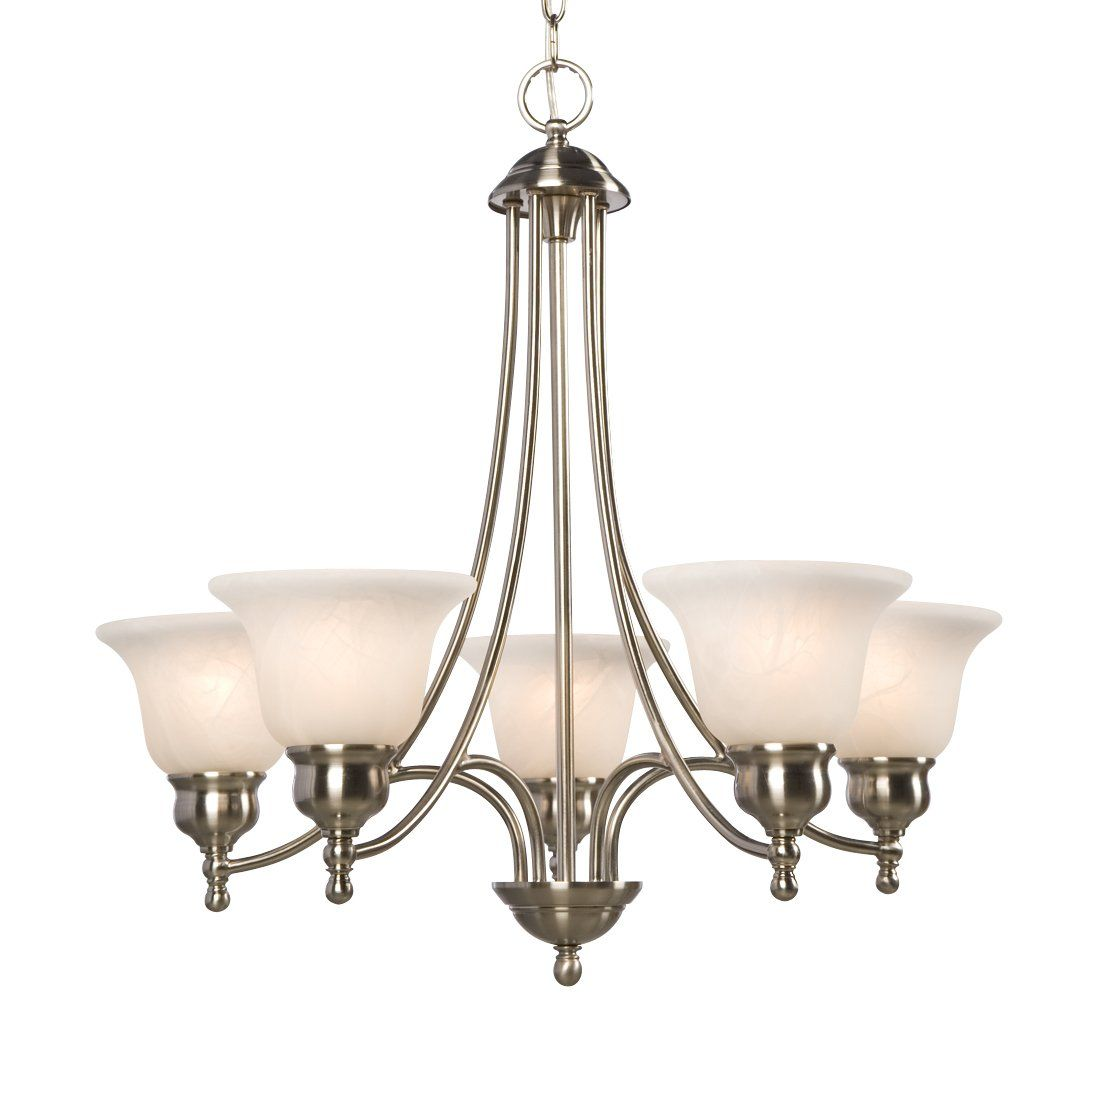 Shop Galaxy Lighting  800805 5 Light Dover Chandelier  at The Mine. Browse our chandeliers, all with free shipping and best price guaranteed.